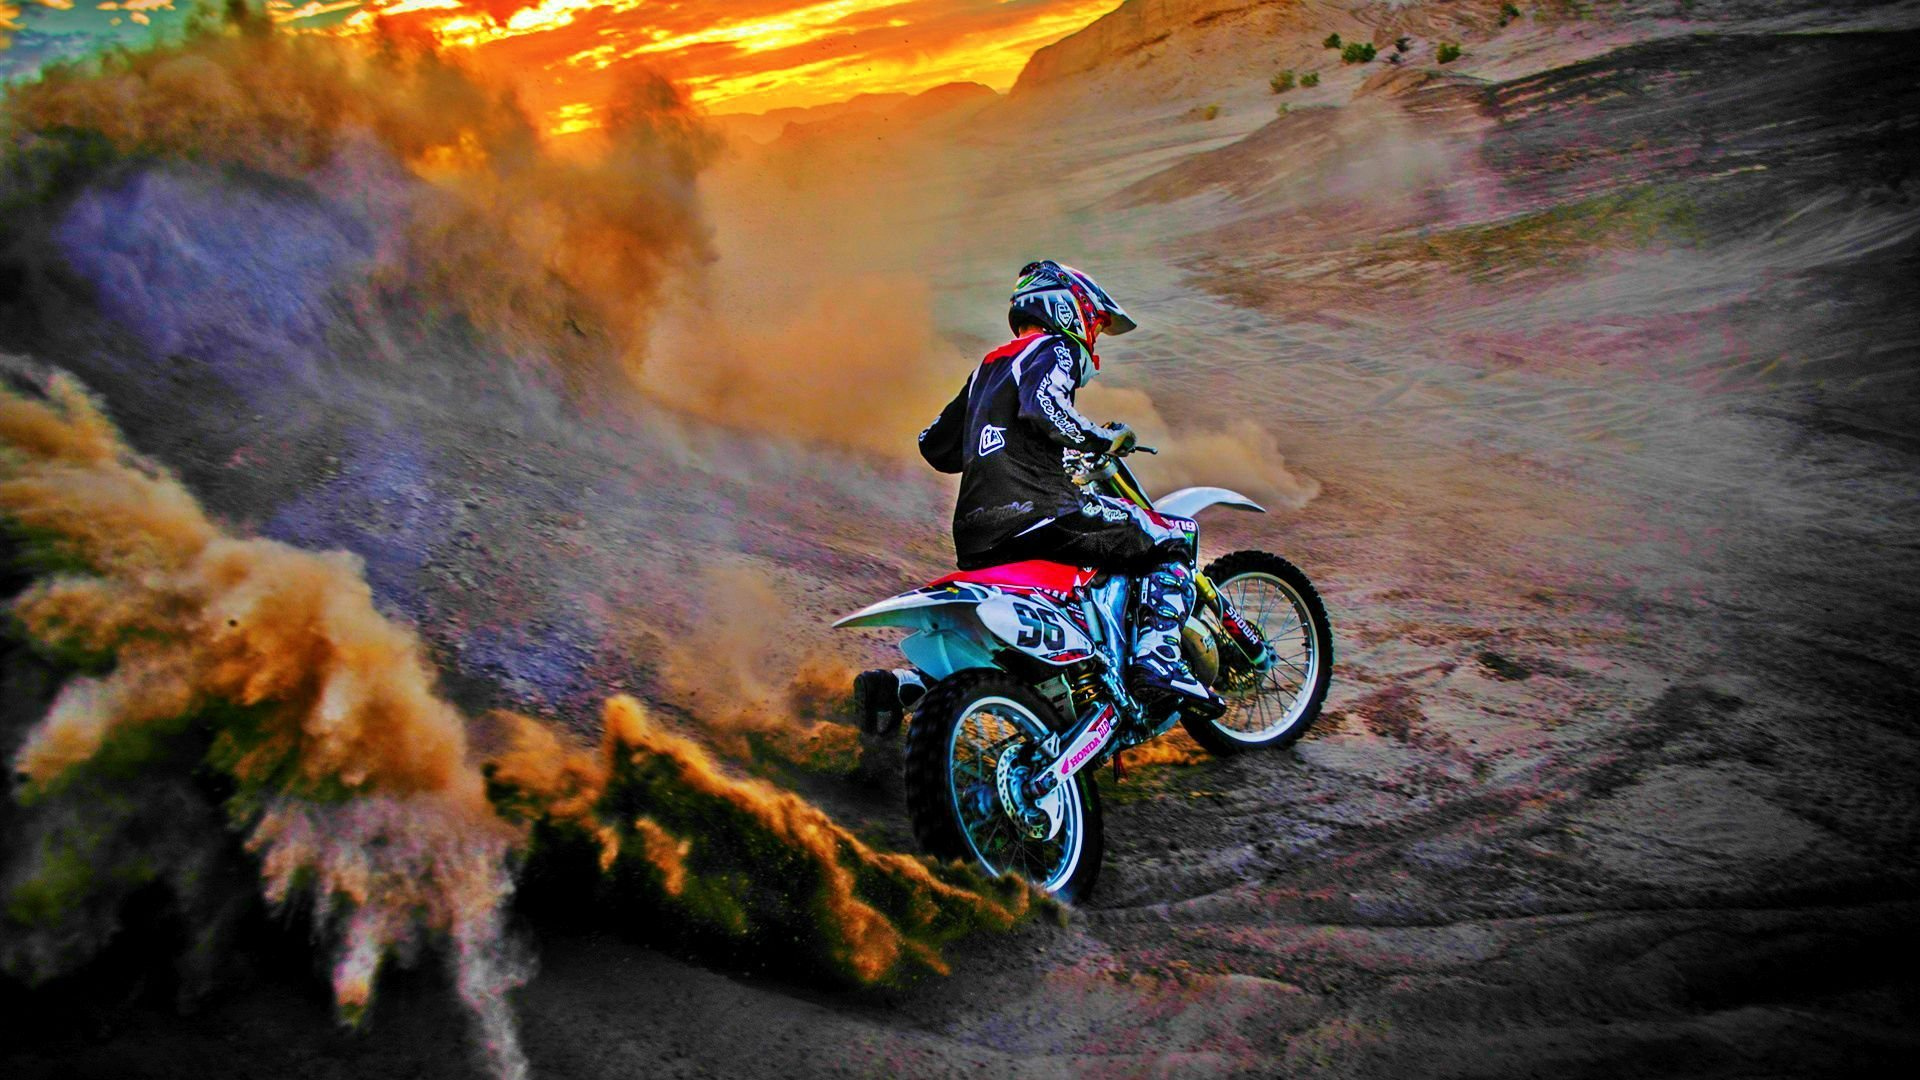 Motocross Wallpaper 2015 - WallpaperSafari